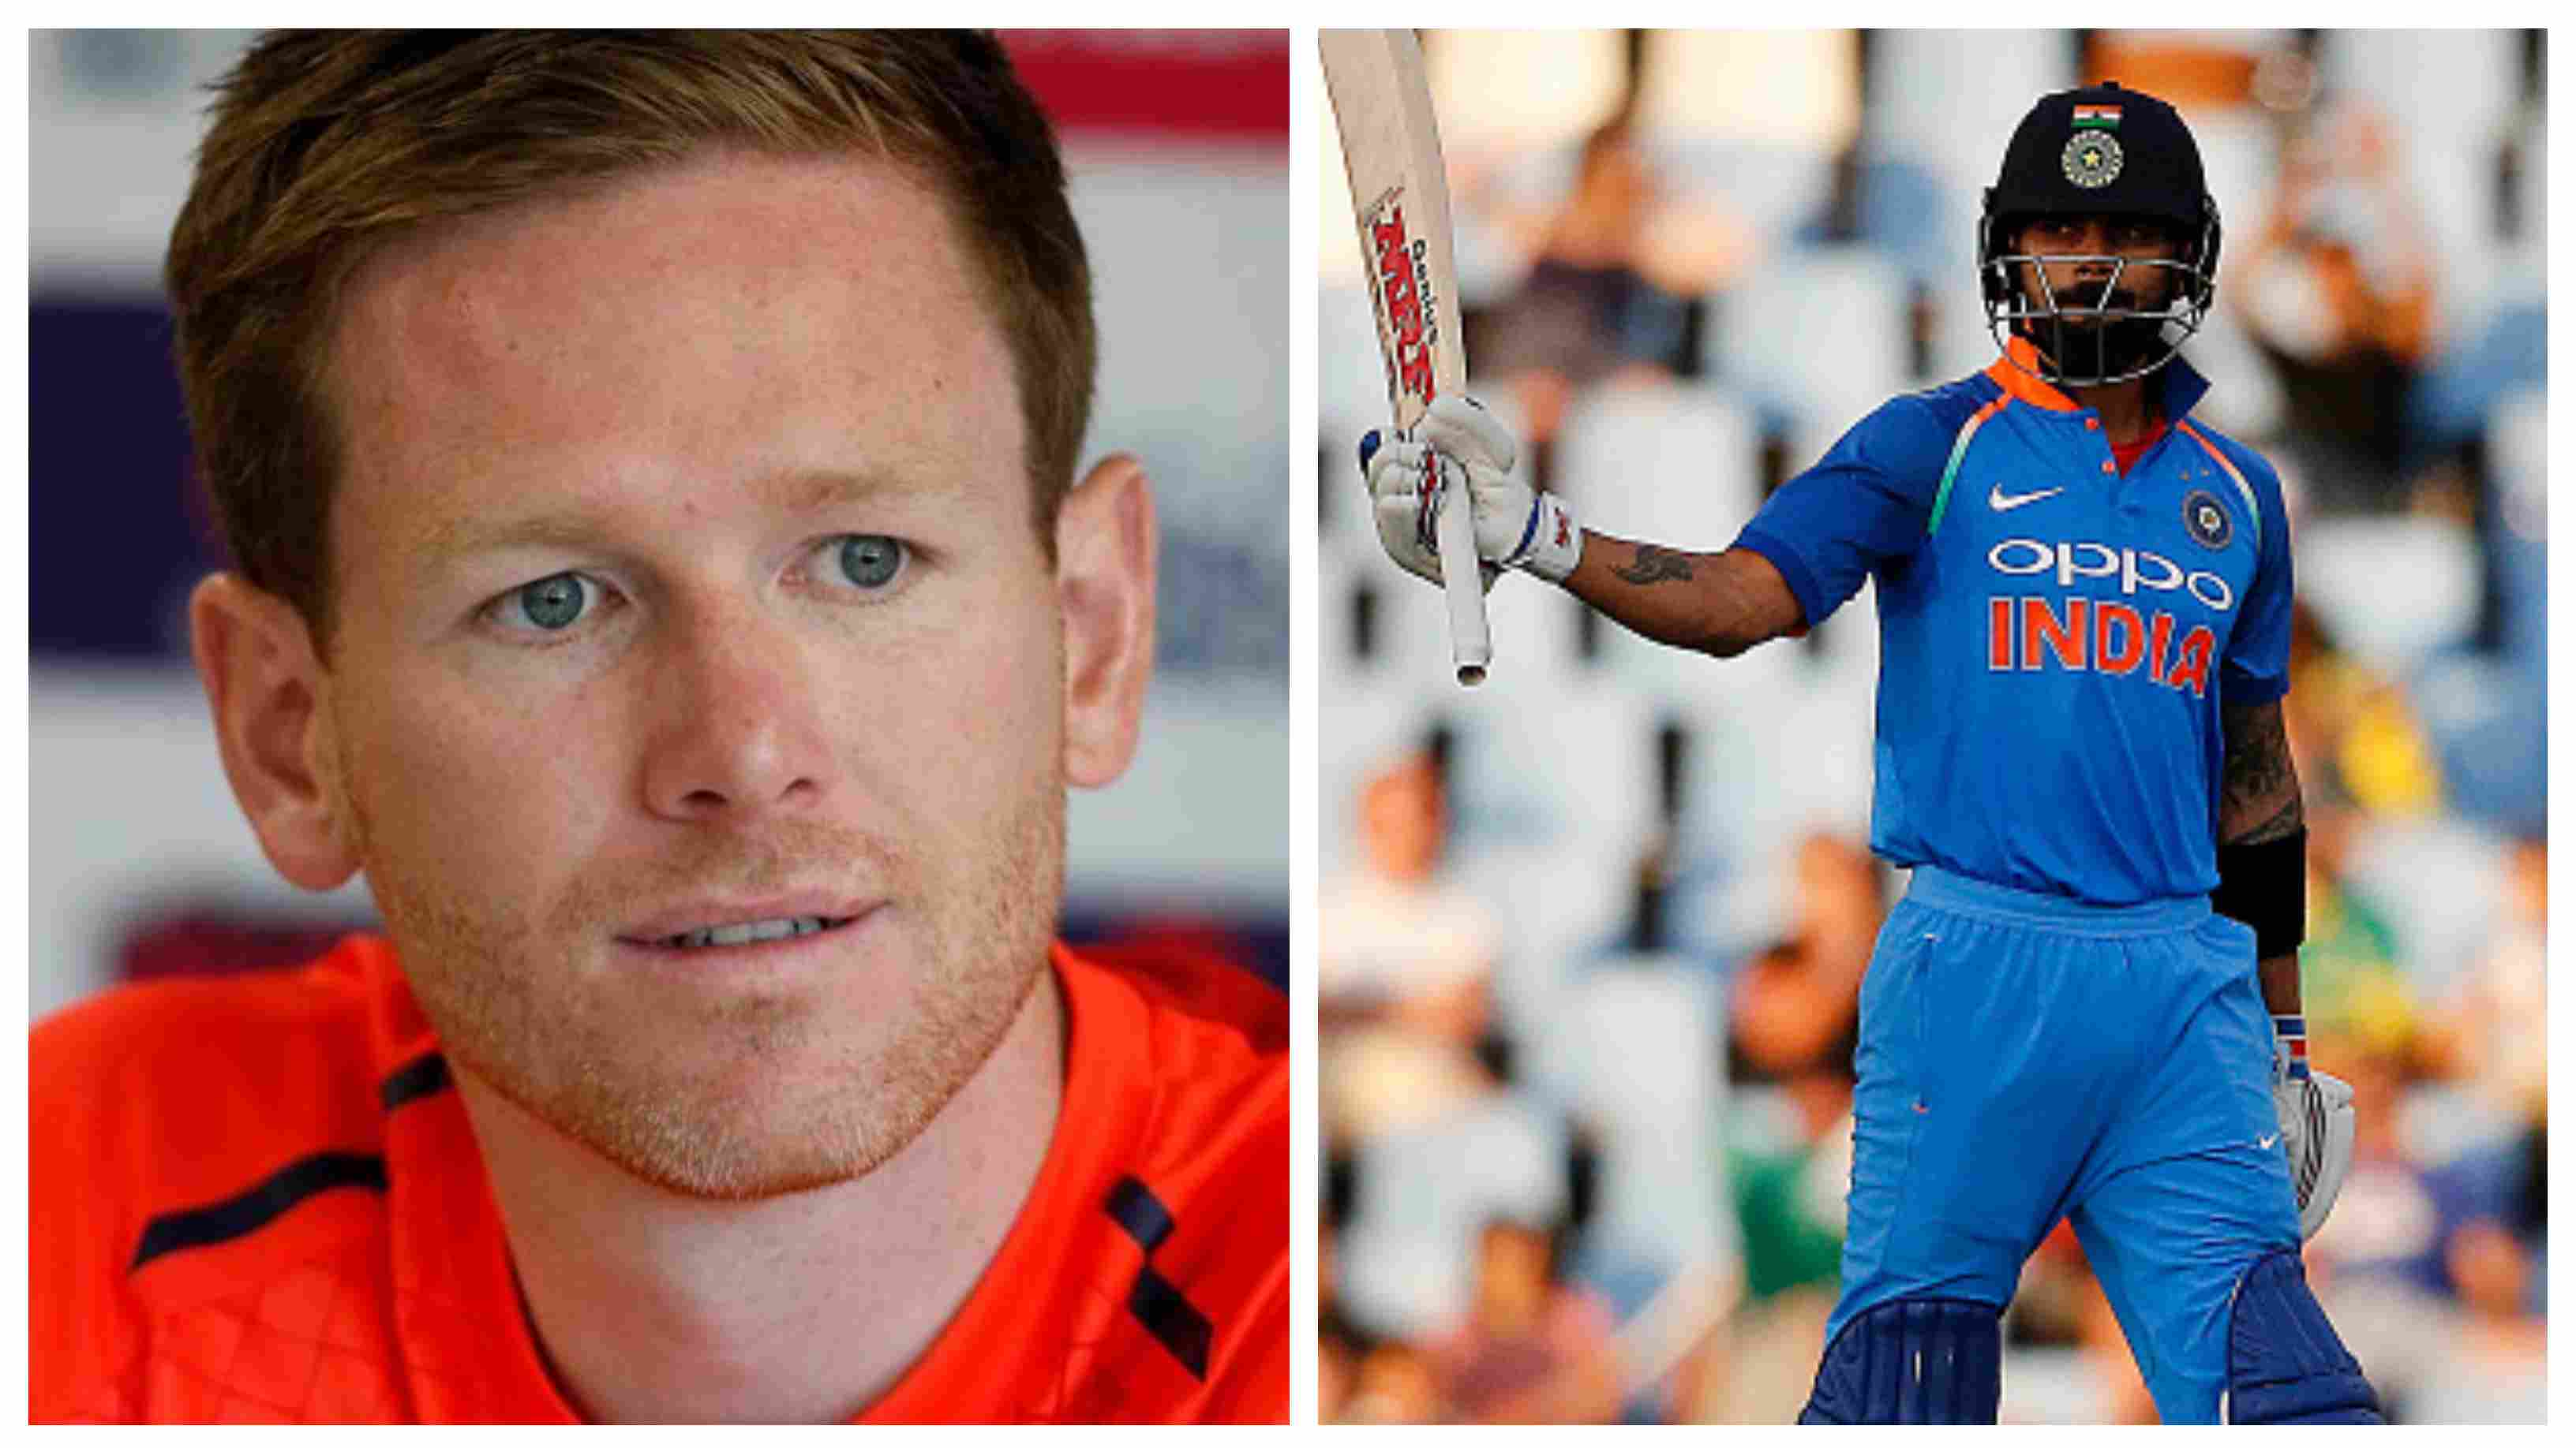 ENG v IND 2018: England have plans to restrain Virat Kohli, says Eoin Morgan